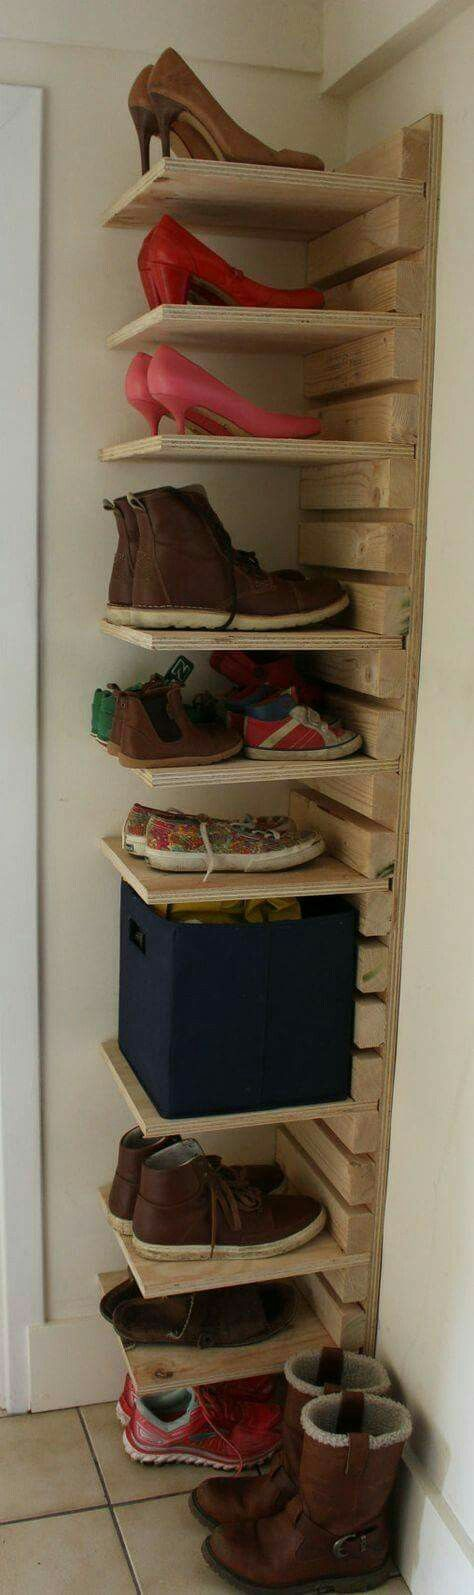 Great vertical shoe storage idea 343 best